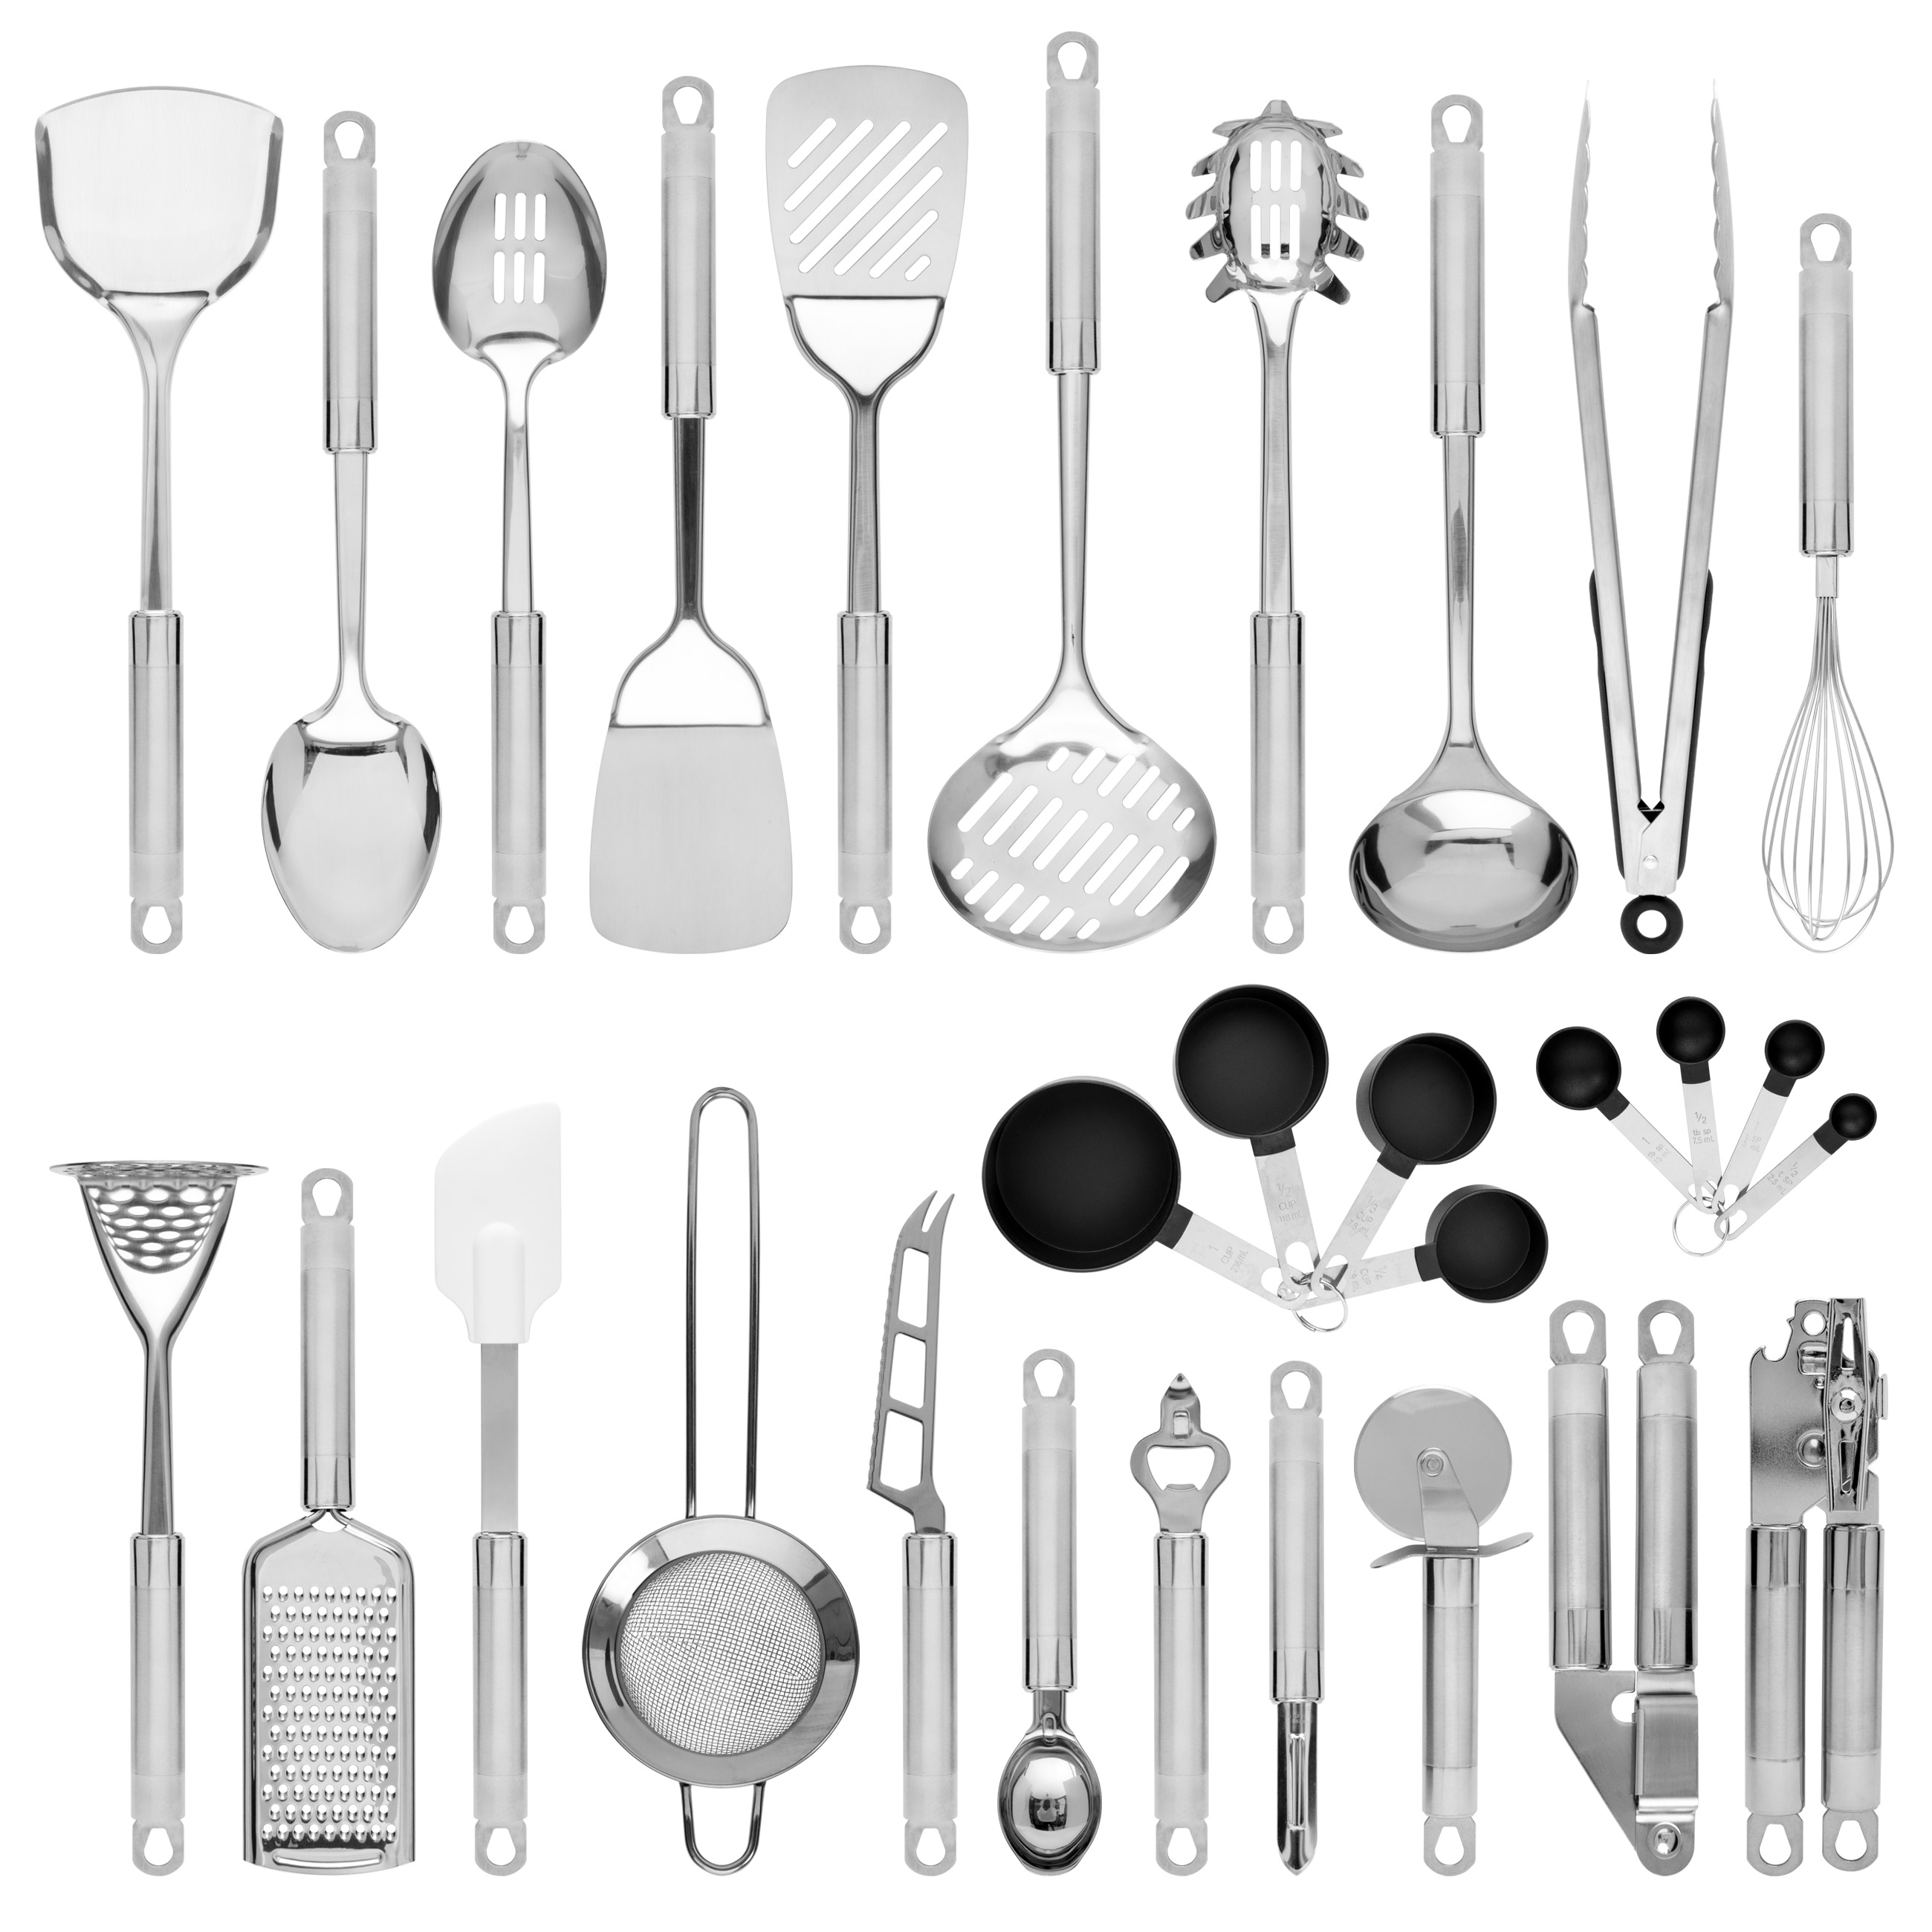 Best Choice Products 29-Piece Stainless Steel Kitchen Cooking Utensil Set w/ Measuring Cups and Spoons - Silver